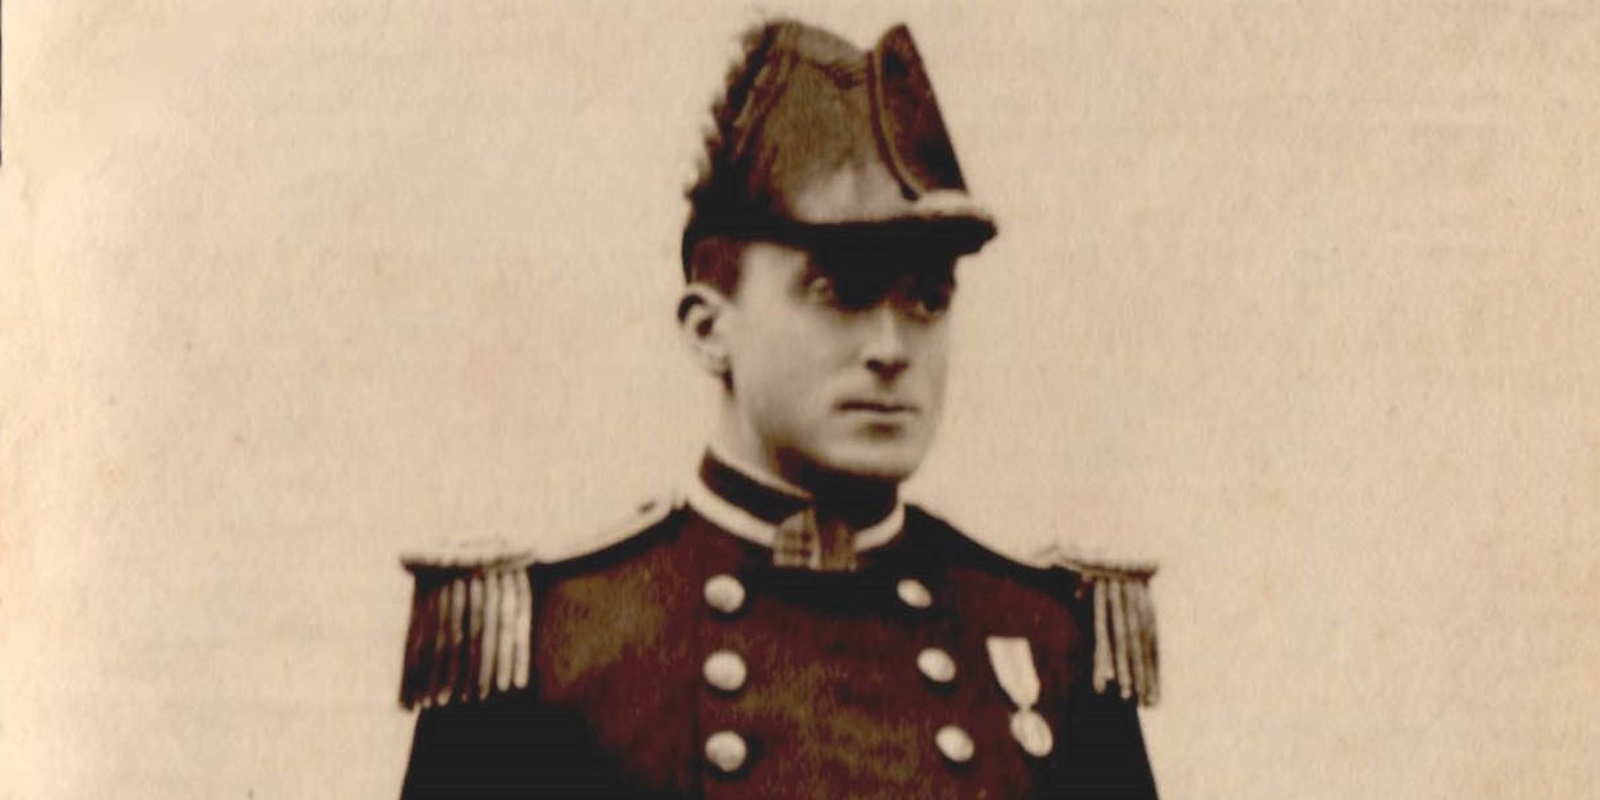 Arthur Pringle as a lieutenant in 1899. Image courtesy of Eliots of Port Eliot